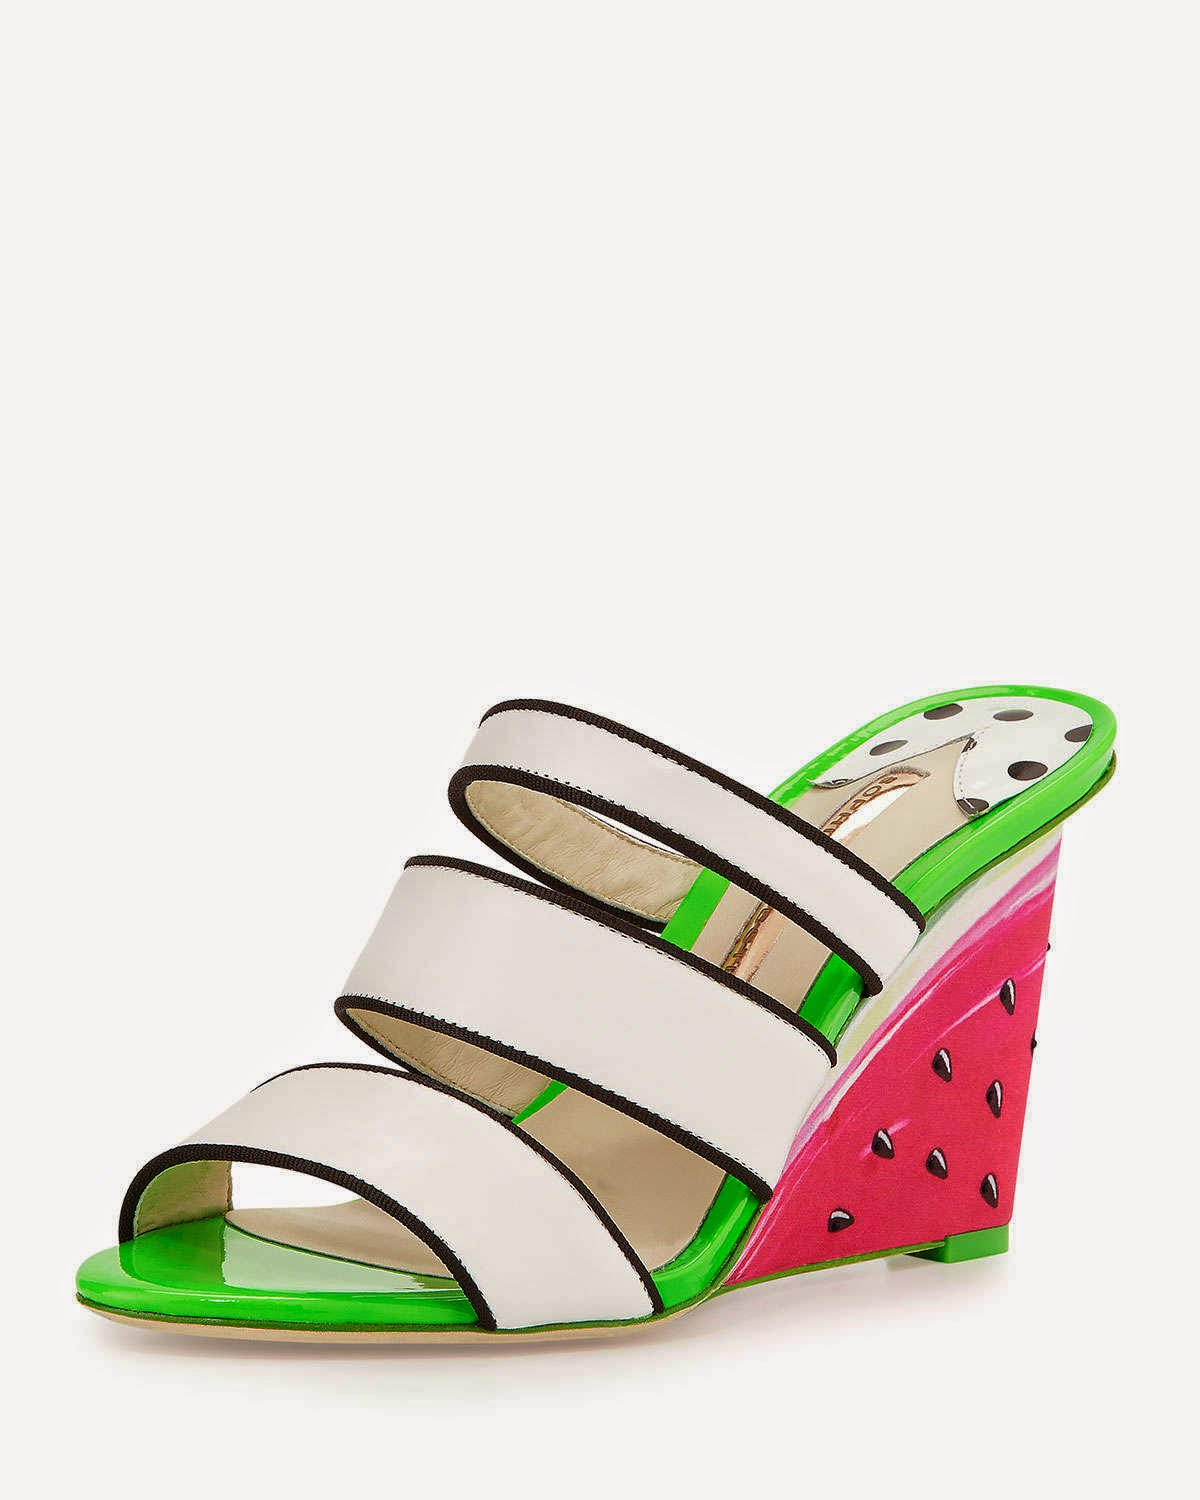 Sophia Webster Wedges